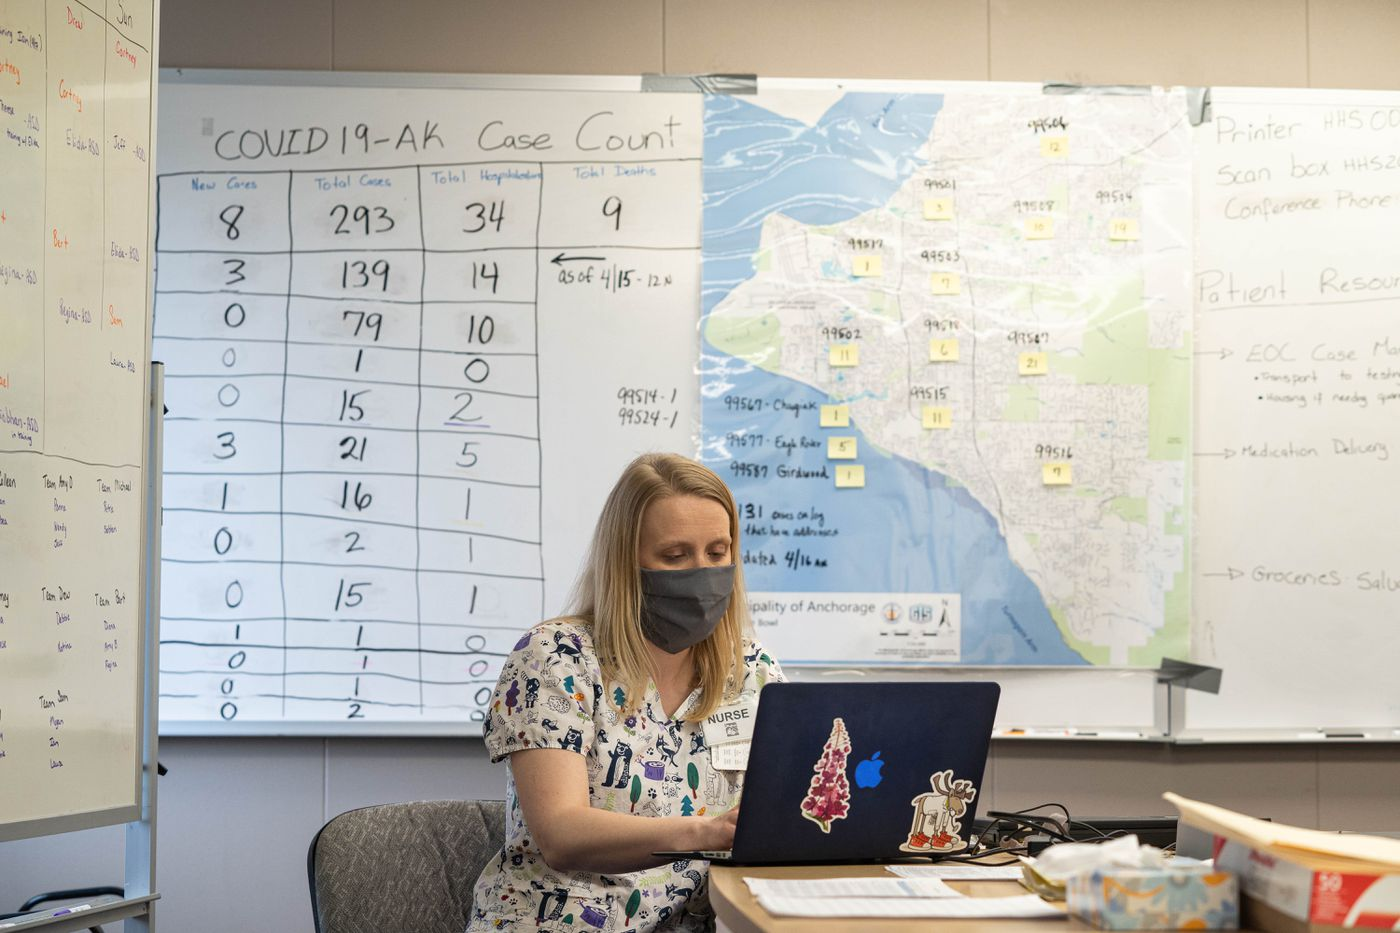 Anchorage School District nurse Bethany Zimpelman works on the COVID-19 contact investigations and monitoring team on Thursday, April 16, 2020. The team is made up of nurses from the municipality as well as from the Anchorage School District. (Loren Holmes / ADN)